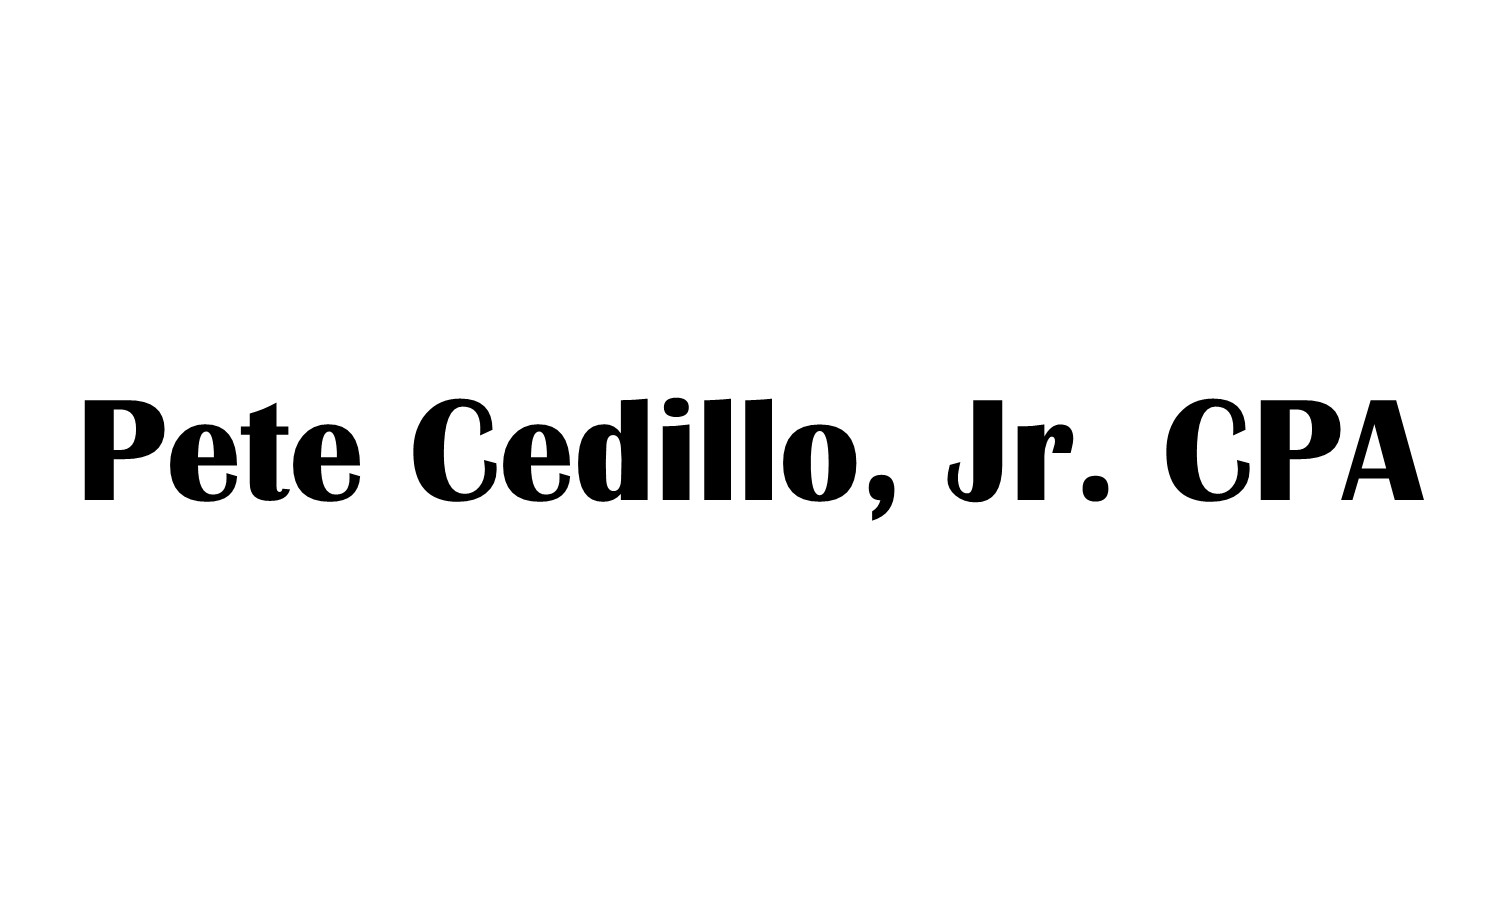 Pete Cedillo, Jr. CPA.jpg